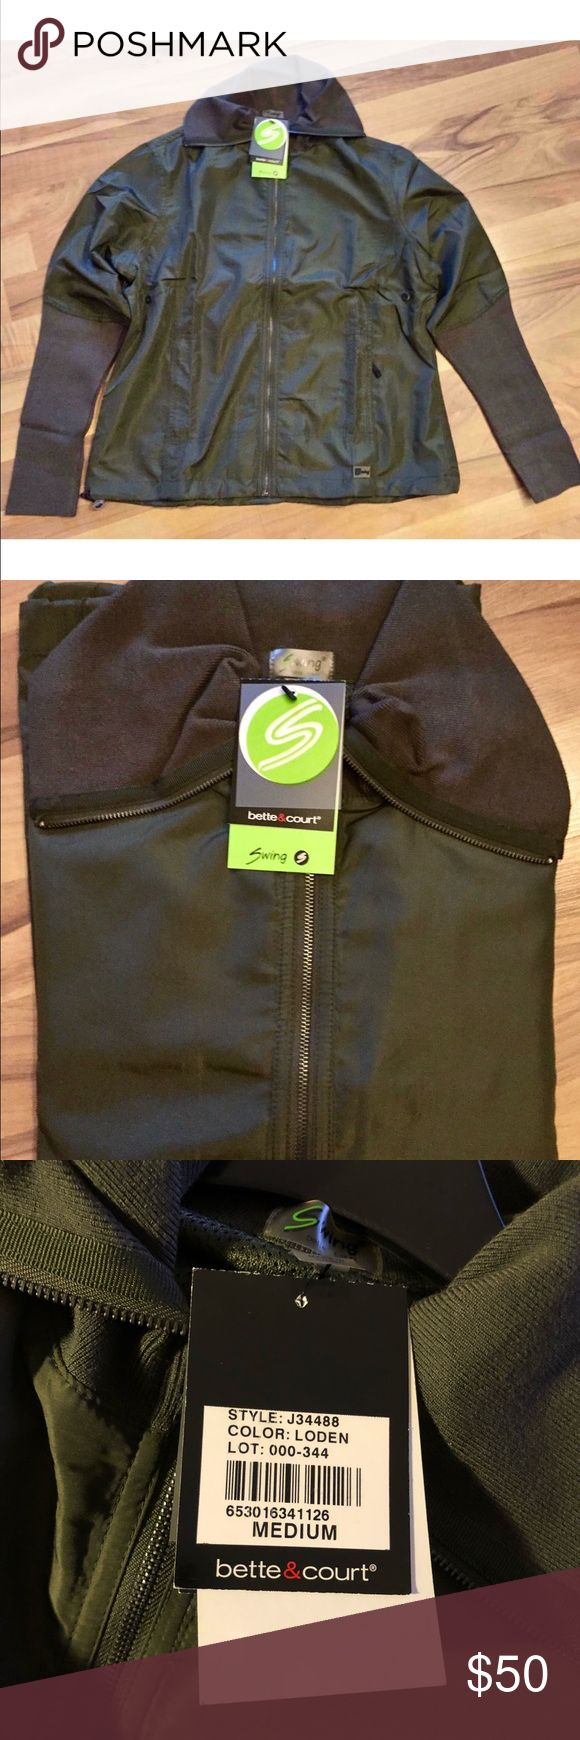 """NWT Olive green """"Swing"""" ladies golf jacket. Med. Not just for golf...made for women w/active lifestyles. See tag for item description. Adorable in Style. New with tags...never worn. Ladies Medium-runs true to size. 100% Polyester. Machine washable. Jackets & Coats Utility Jackets"""